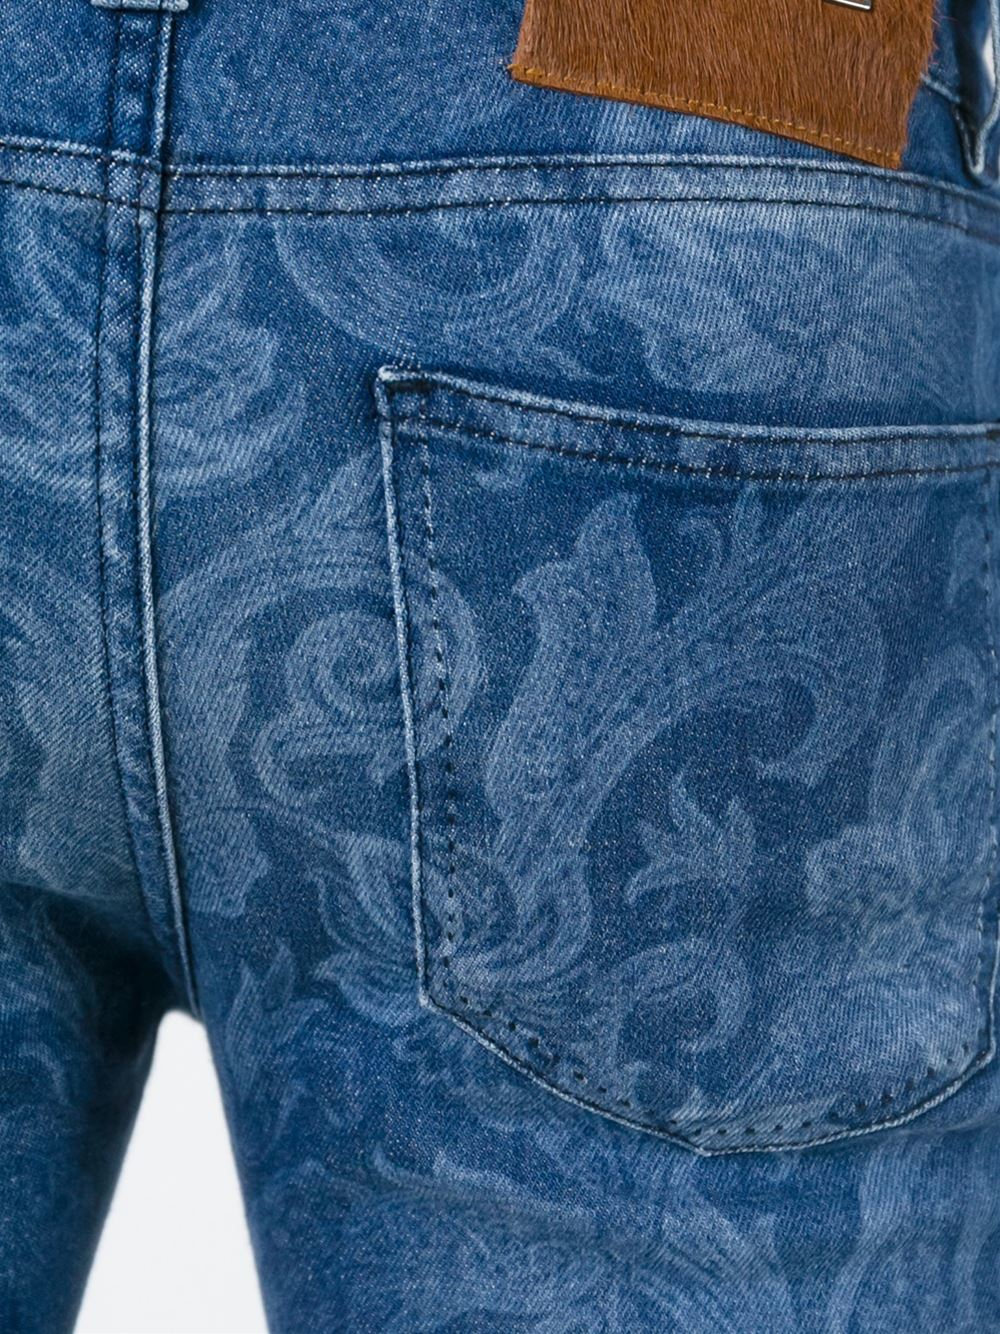 Lyst Etro Paisley Jeans In Blue For Men